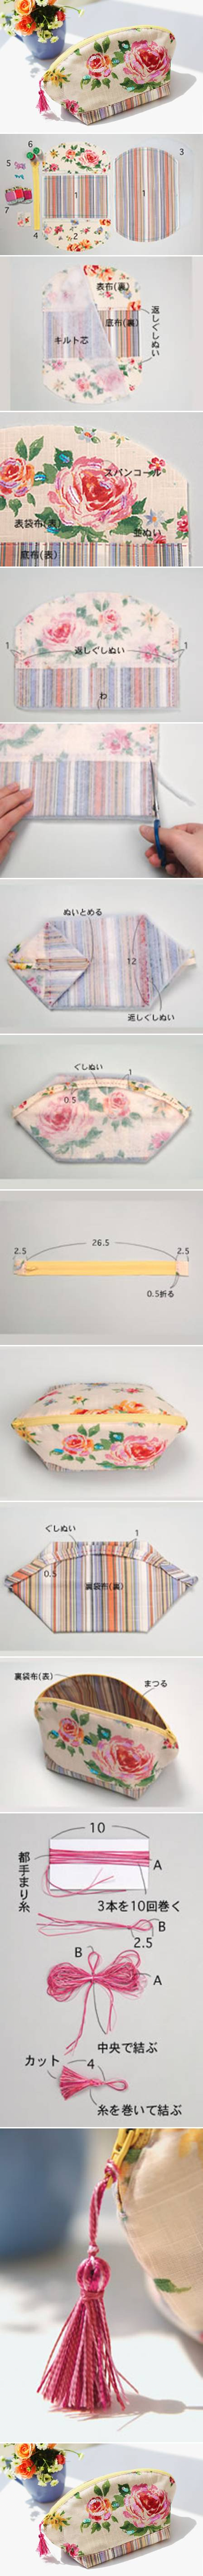 How To Make Beautiful Makeup Pouch step by step DIY tutorial instructions